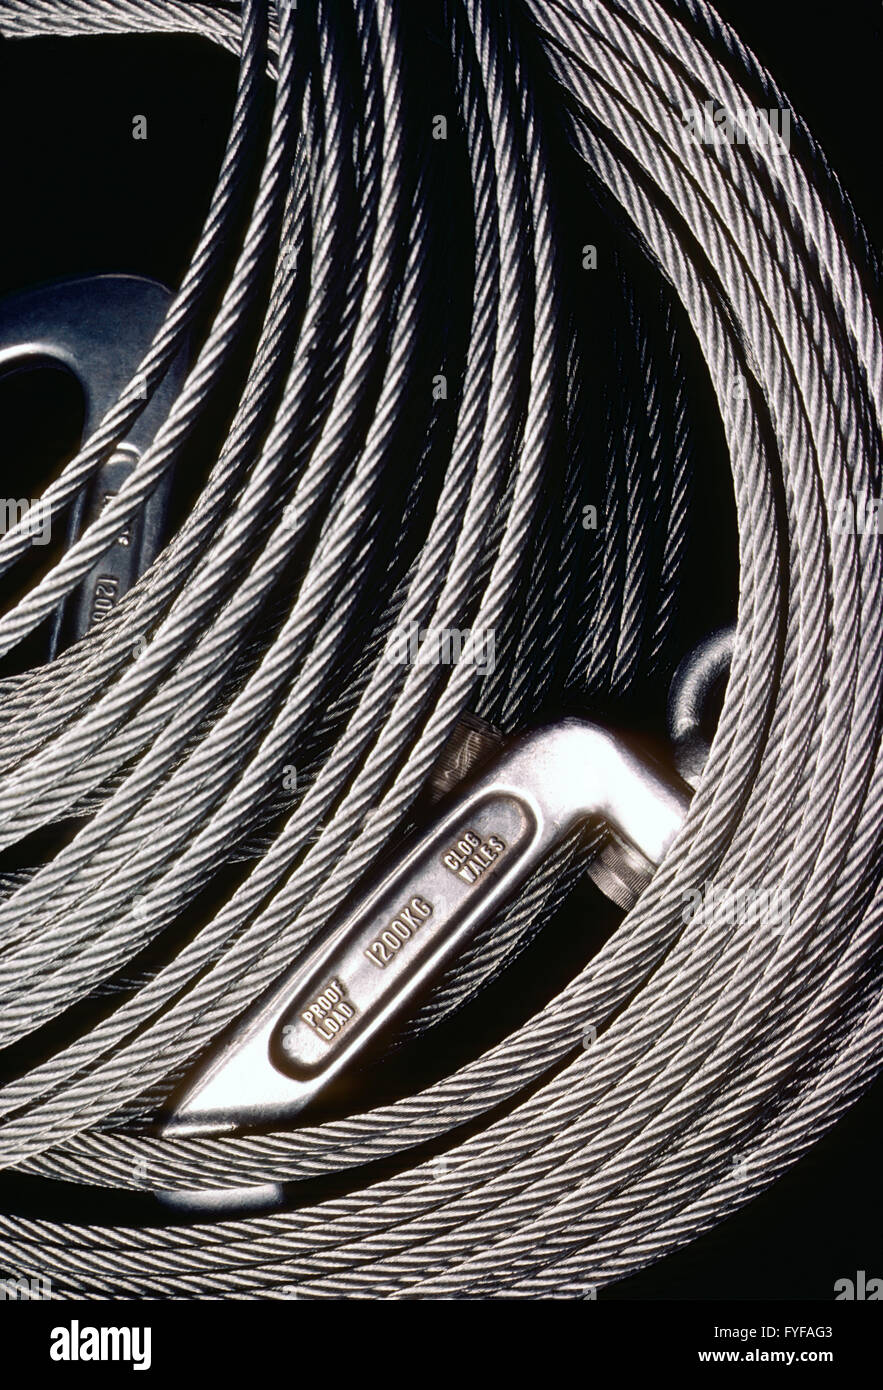 Coiled stainless steel wire cable - Stock Image